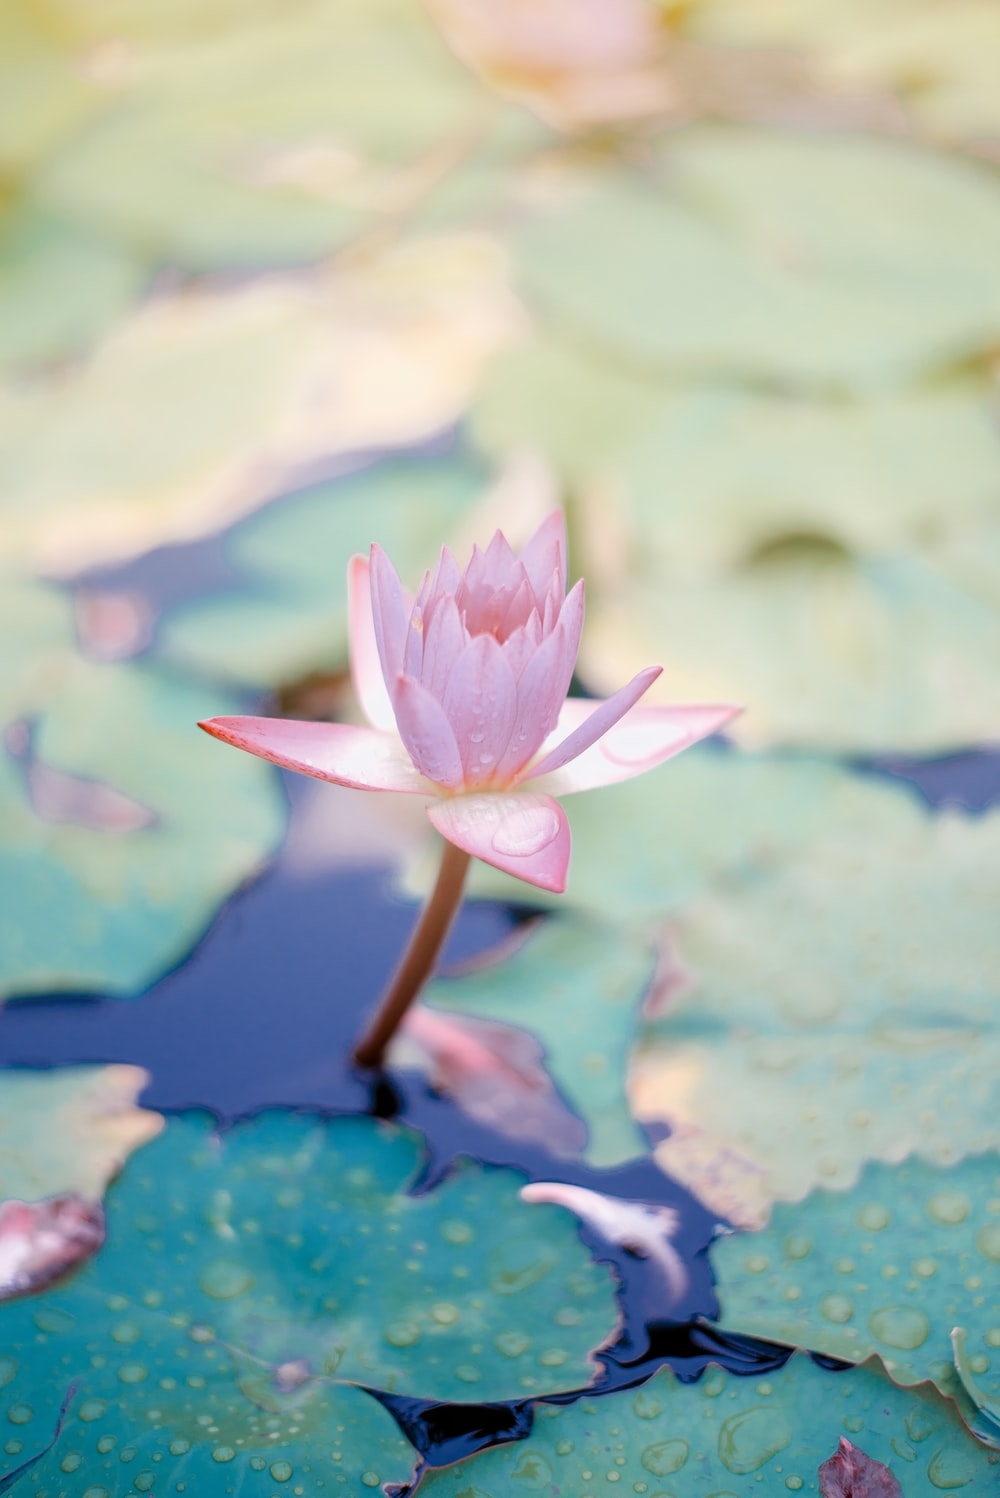 close up photo of water lily flower